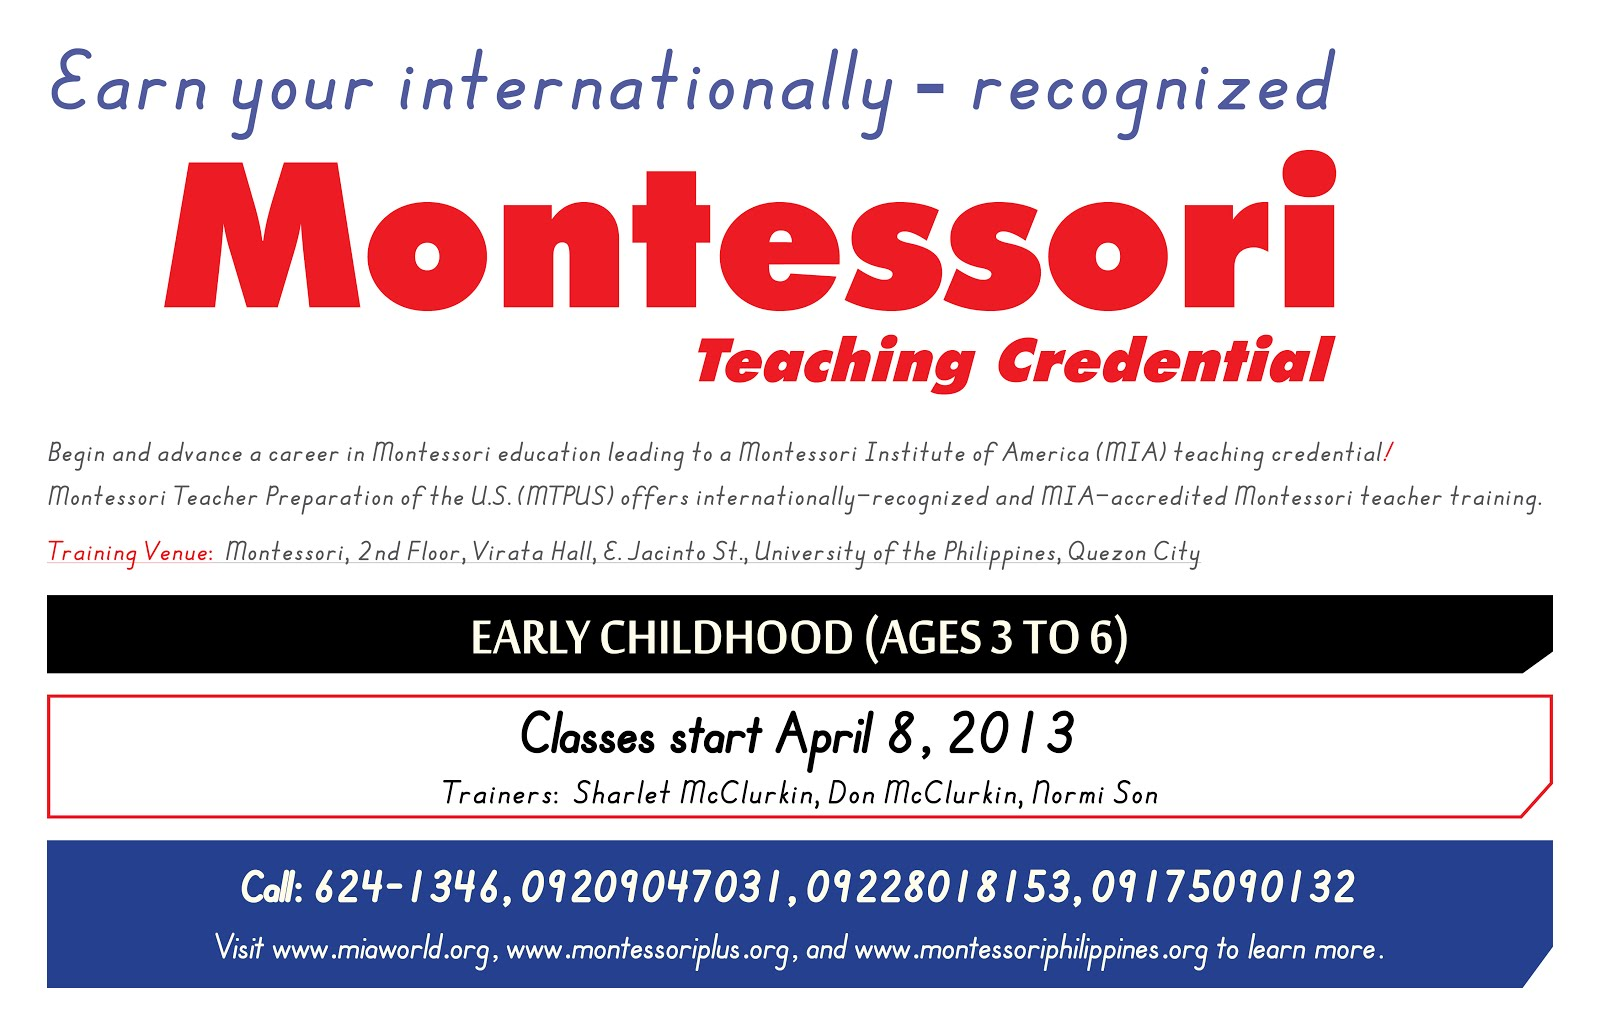 Montessori and other nontraditional education programs